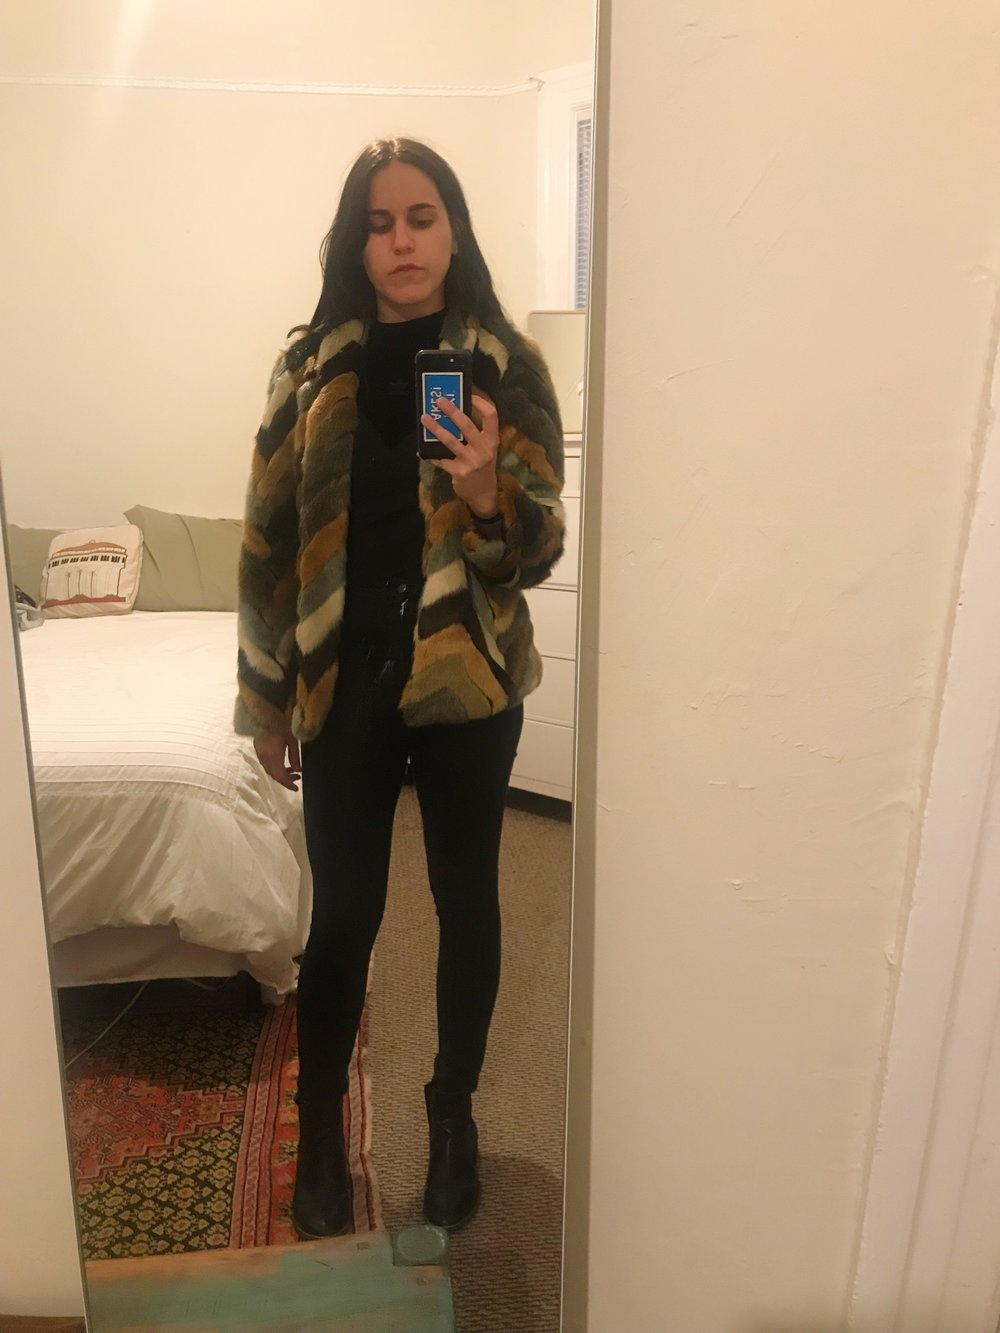 Me, again.  Guess  faux fur jacket from  Poshmark ,  Adidas  shirt from  Wasteland ,  American Apparel  pants, and  Target  Sam & Libby boots.